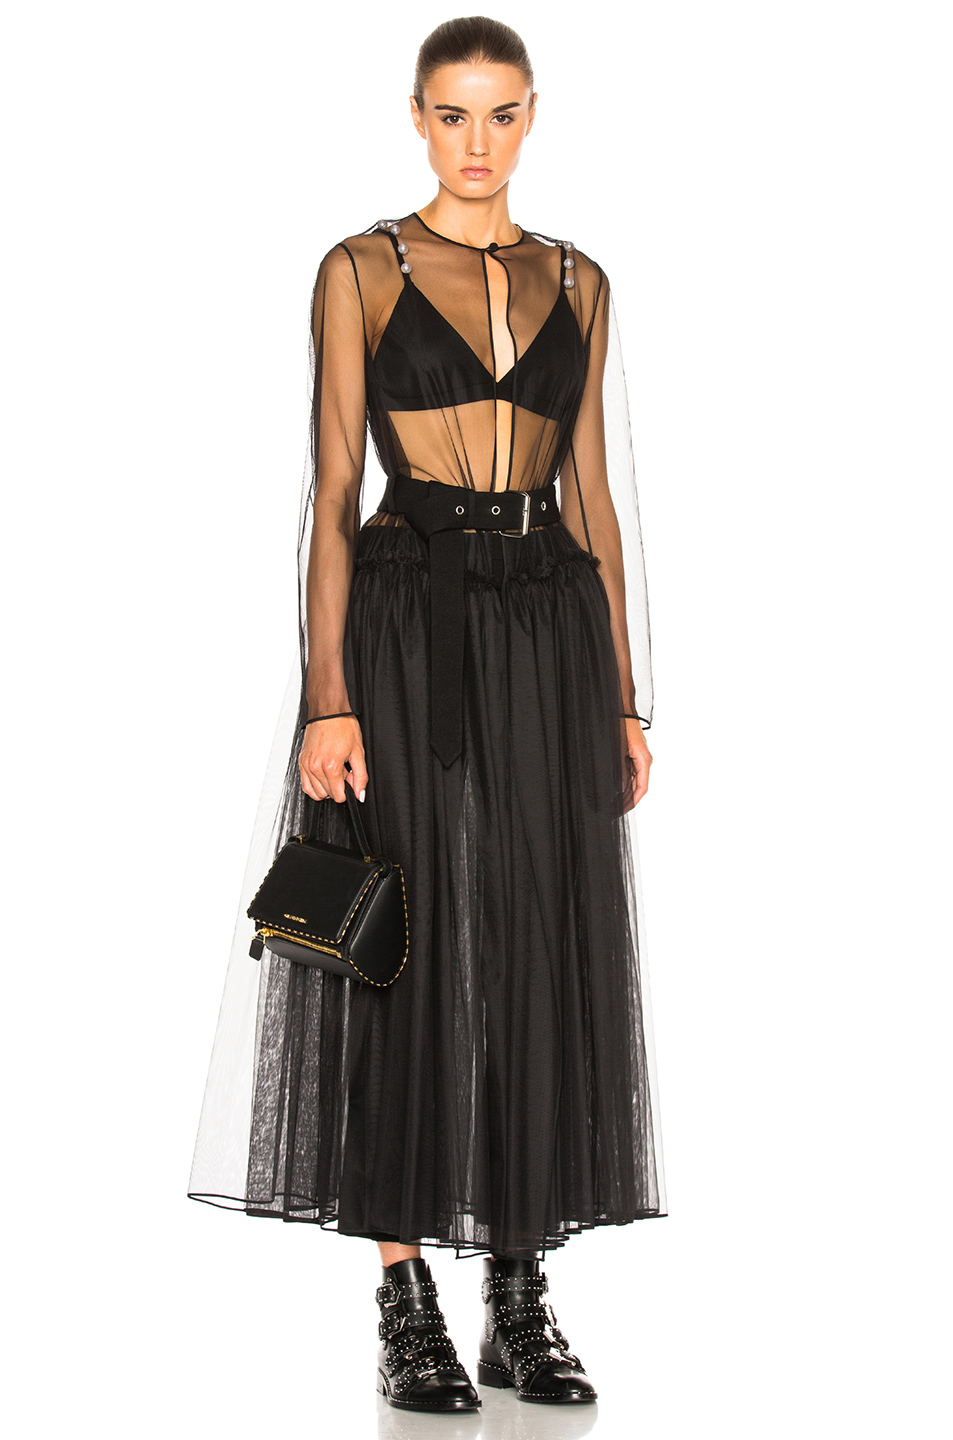 Givenchy Technical Tulle Dress With Belt in Black